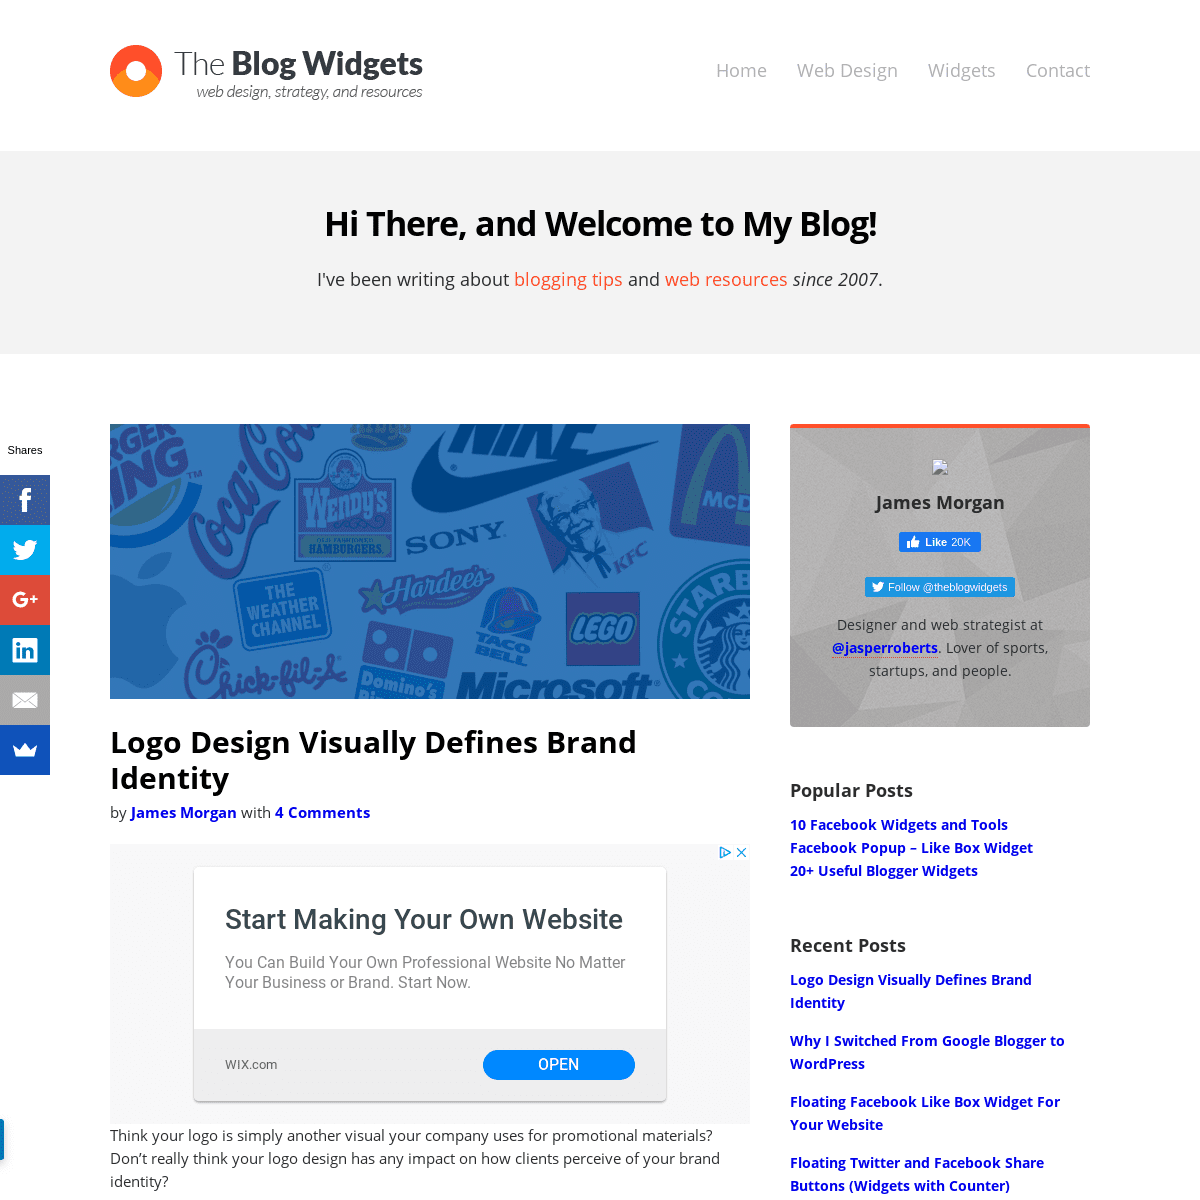 Best Blog Widgets For Free - Web design, strategy, and resources.